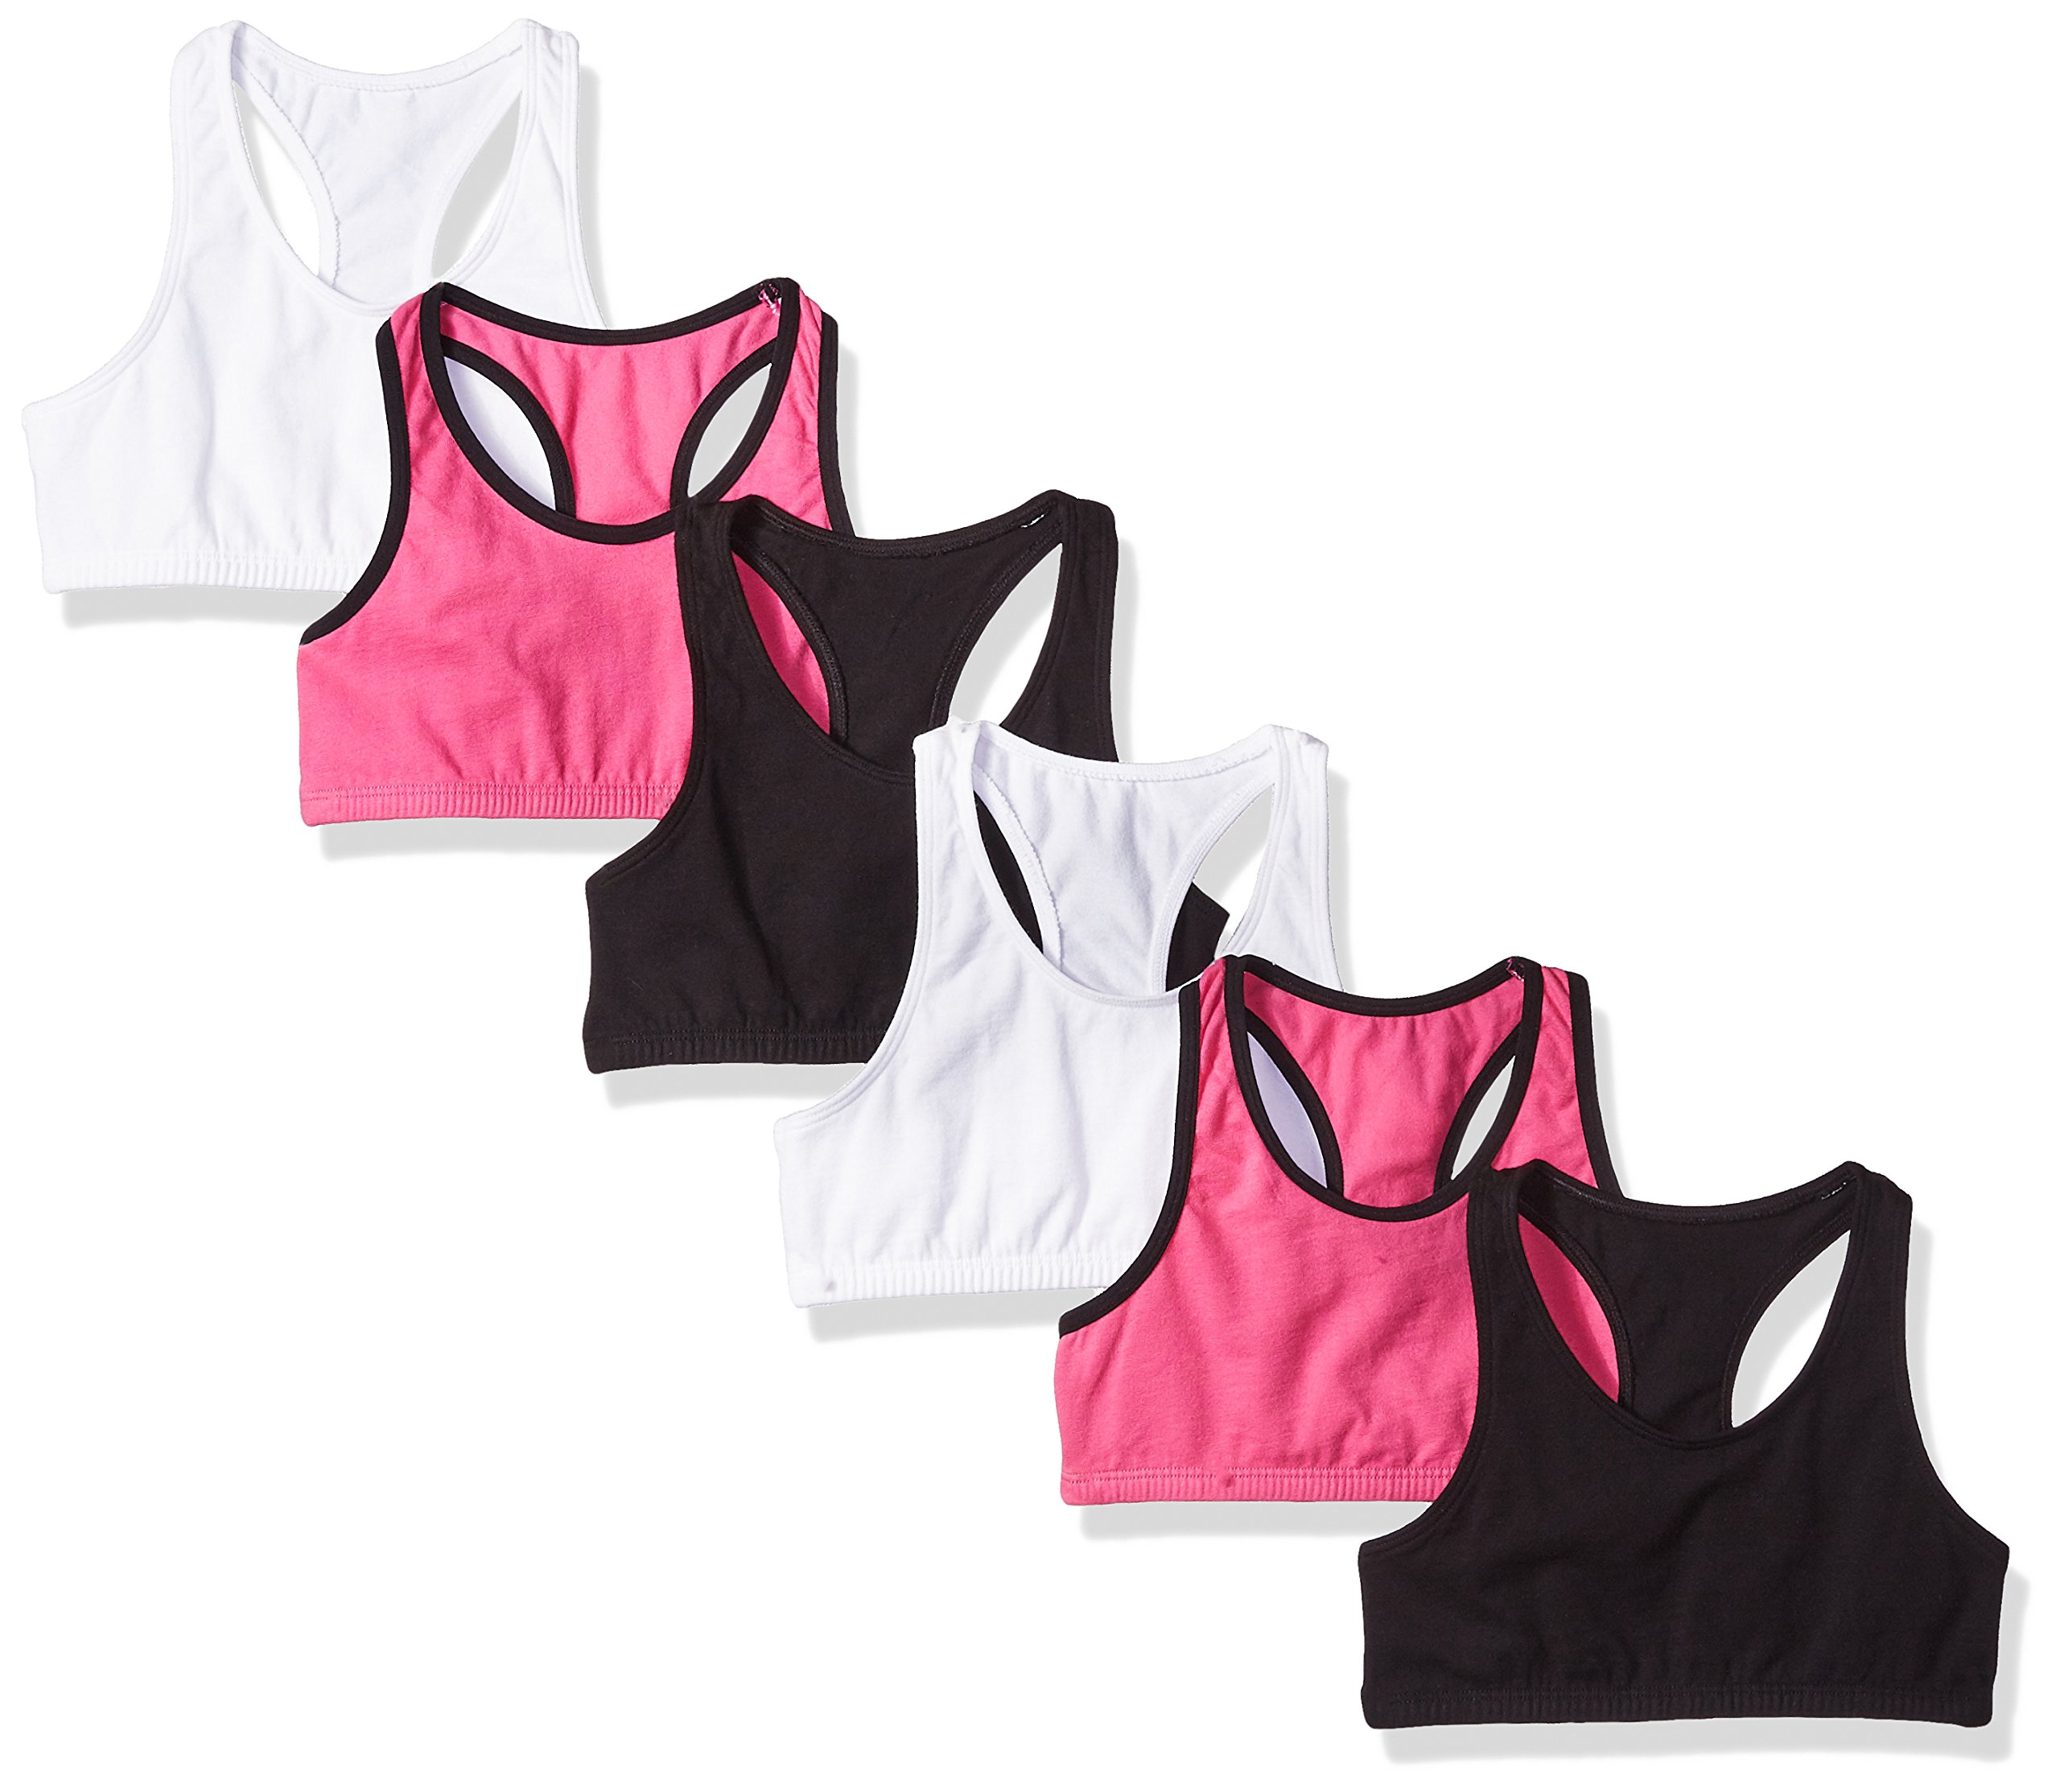 Fruit of the Loom Big Girls' Cotton Built-up Sport Bra, Passion Fruit with Black/White/Black-6 Pack, 38